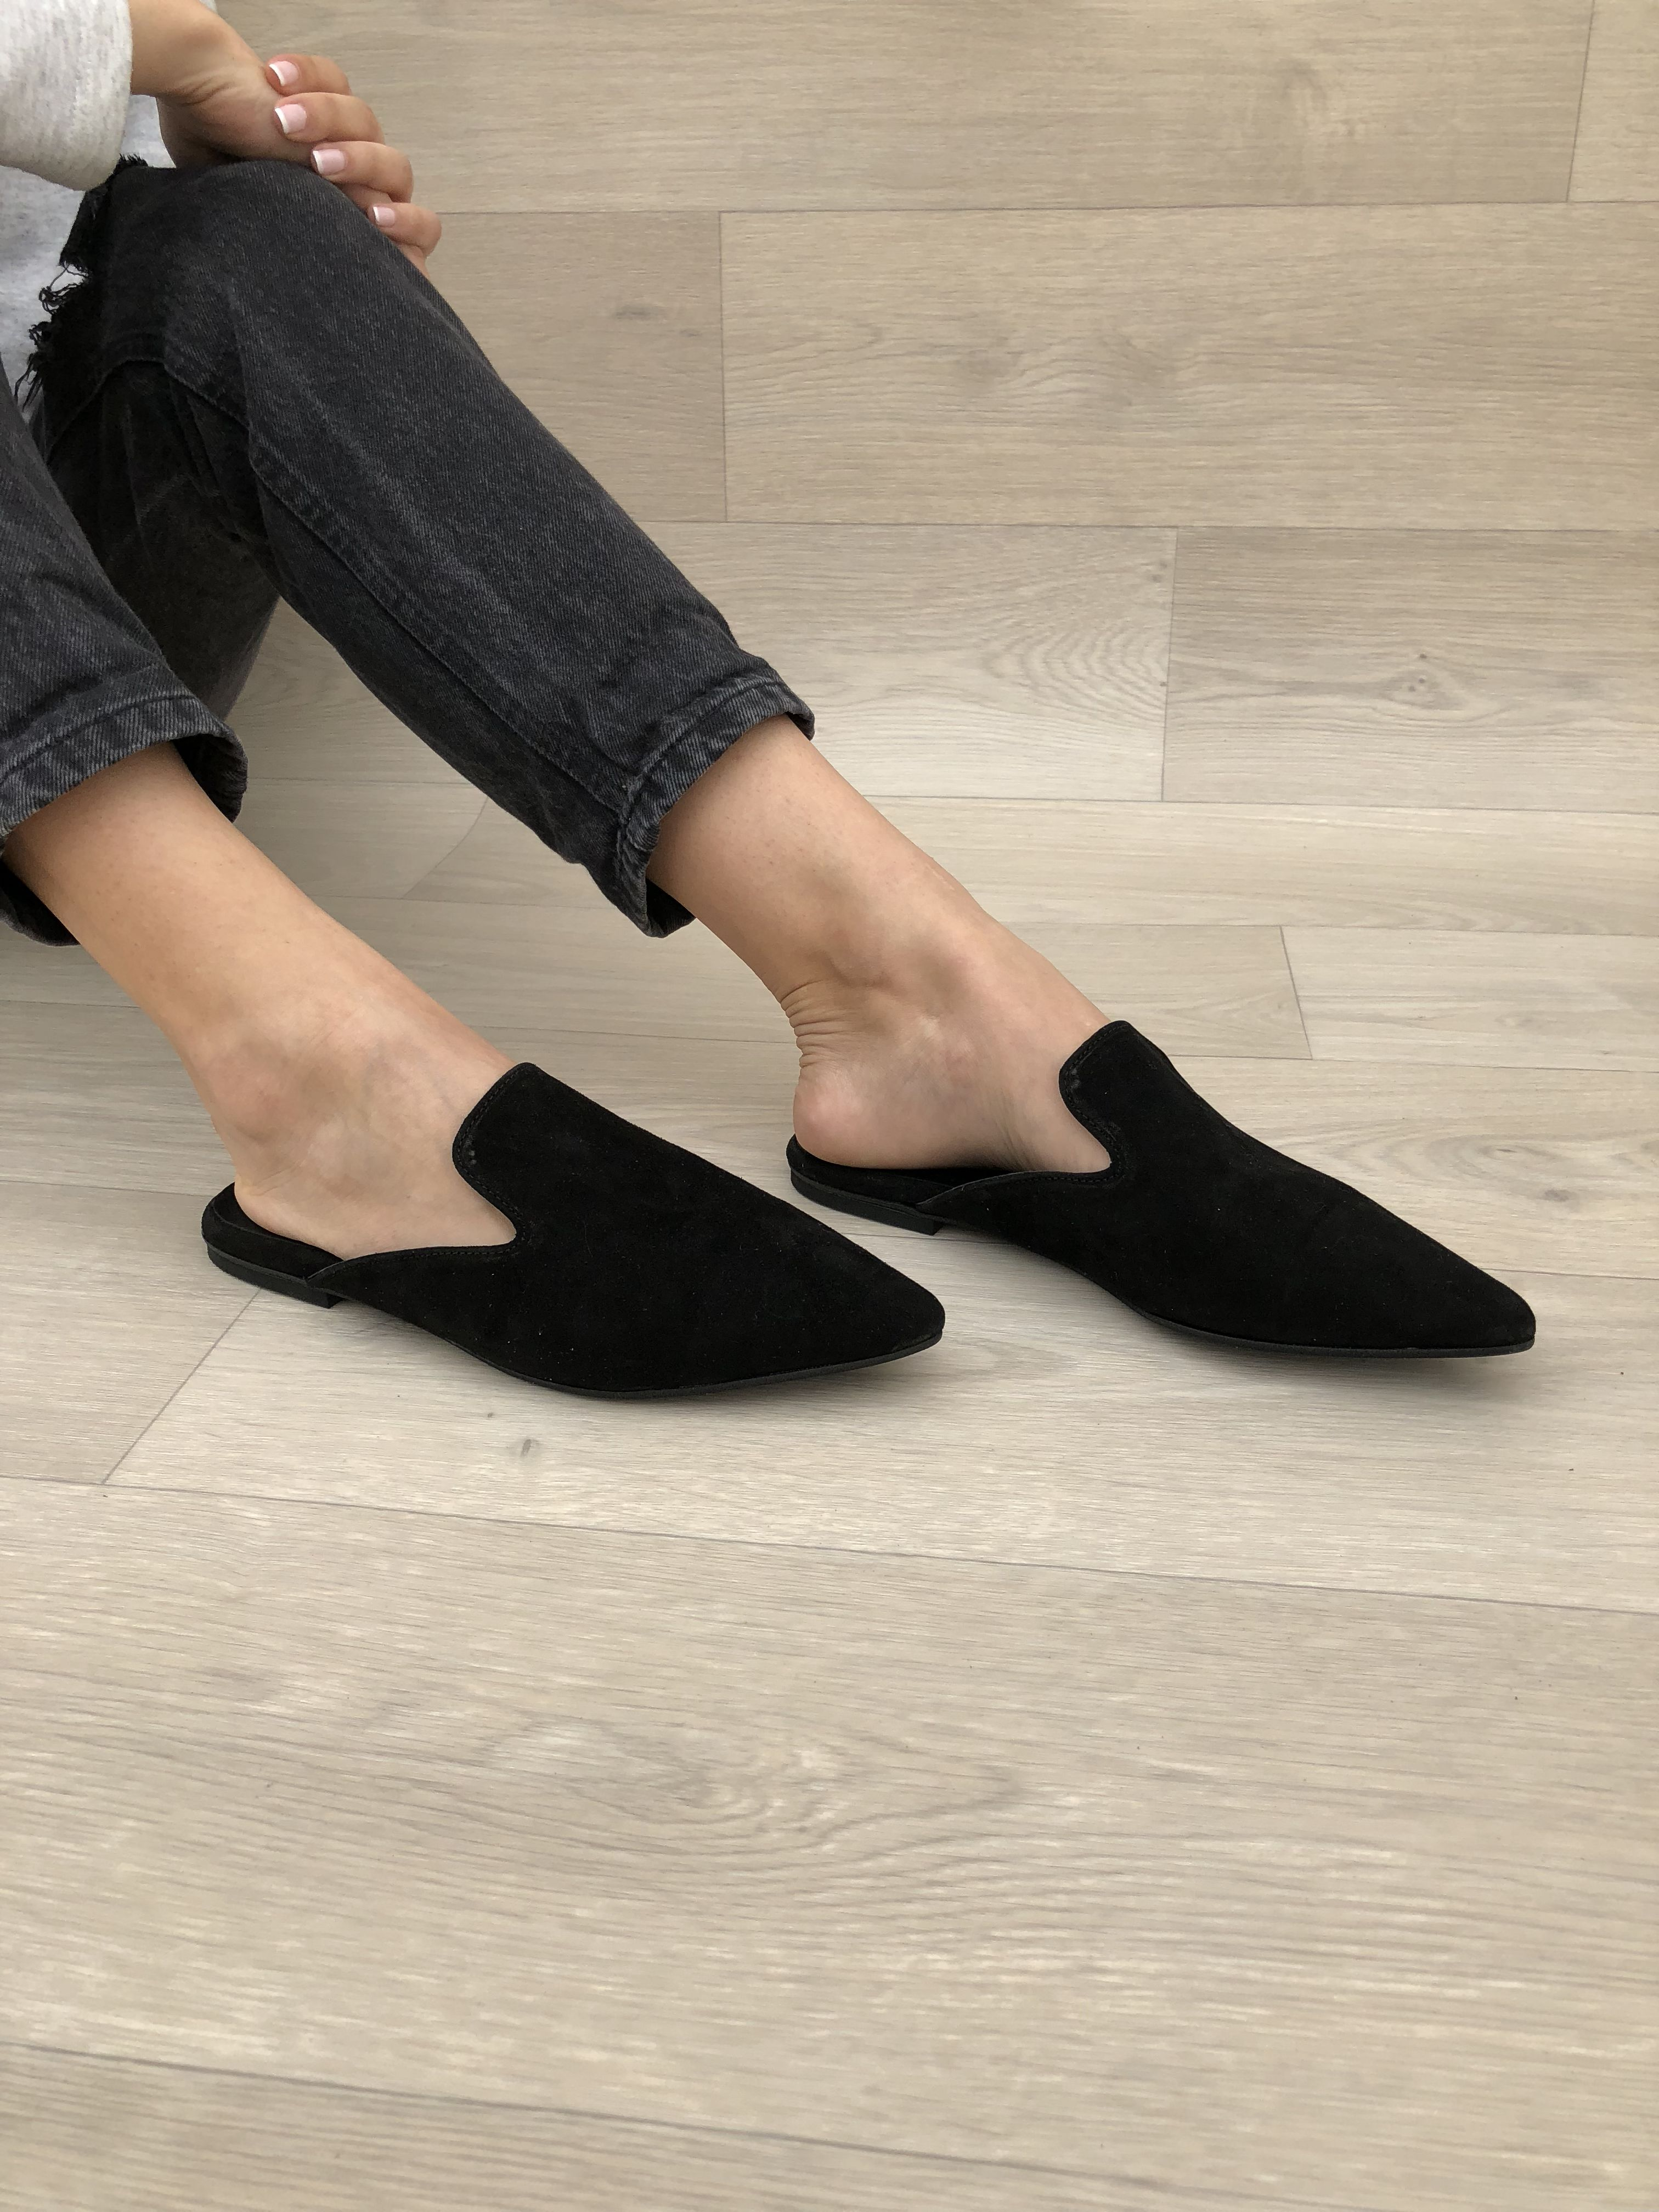 Suede mules, Leather sandals